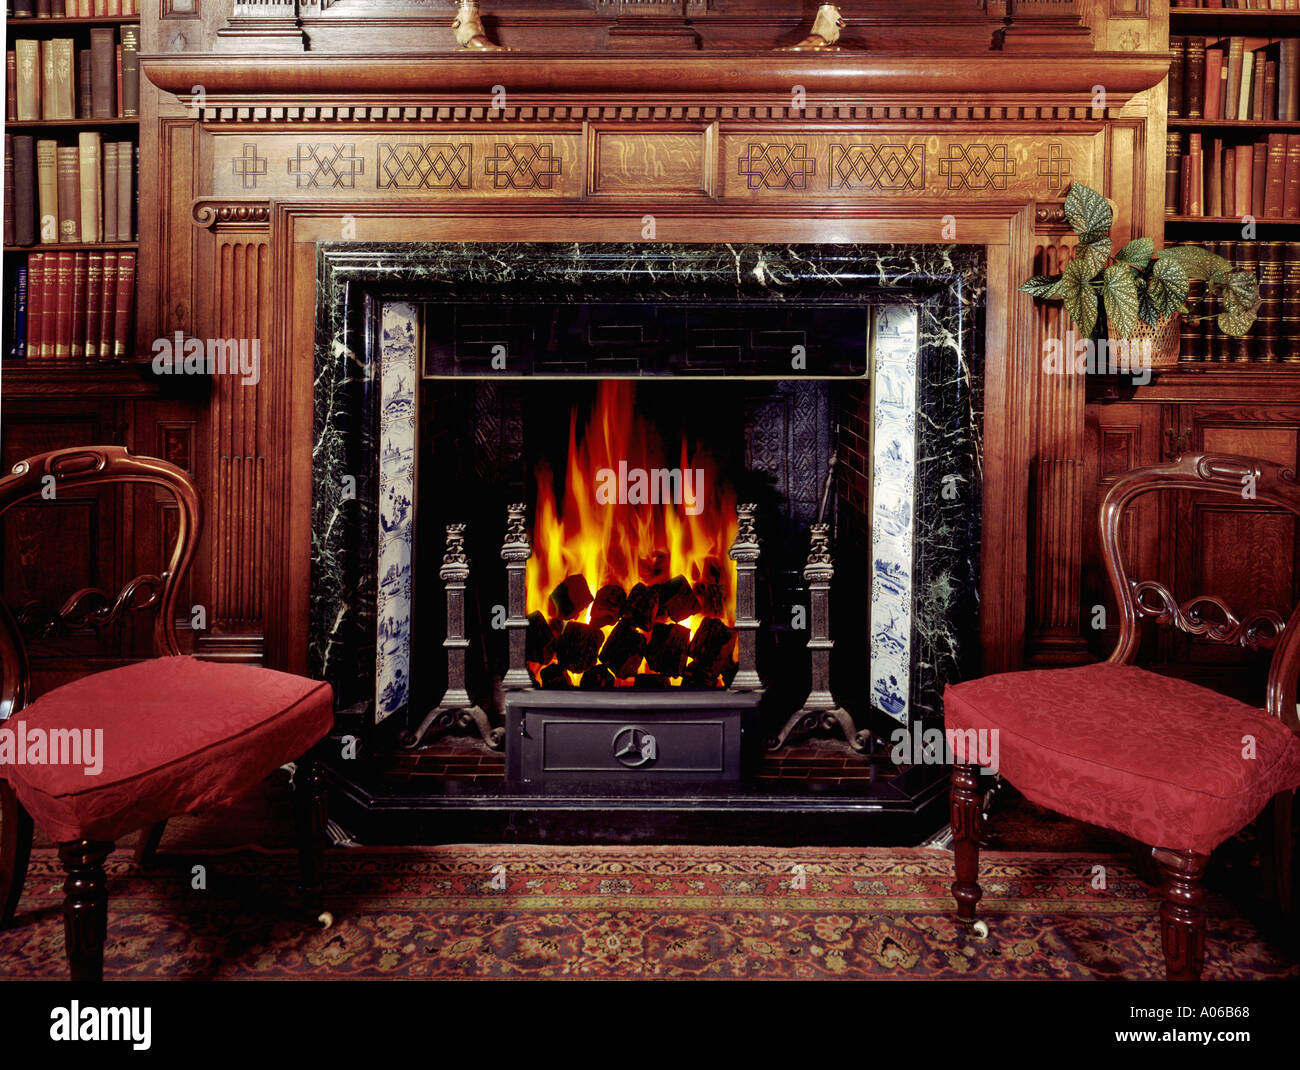 Grand Old Fireplace In British Country House Stock Photo 27496 Alamy